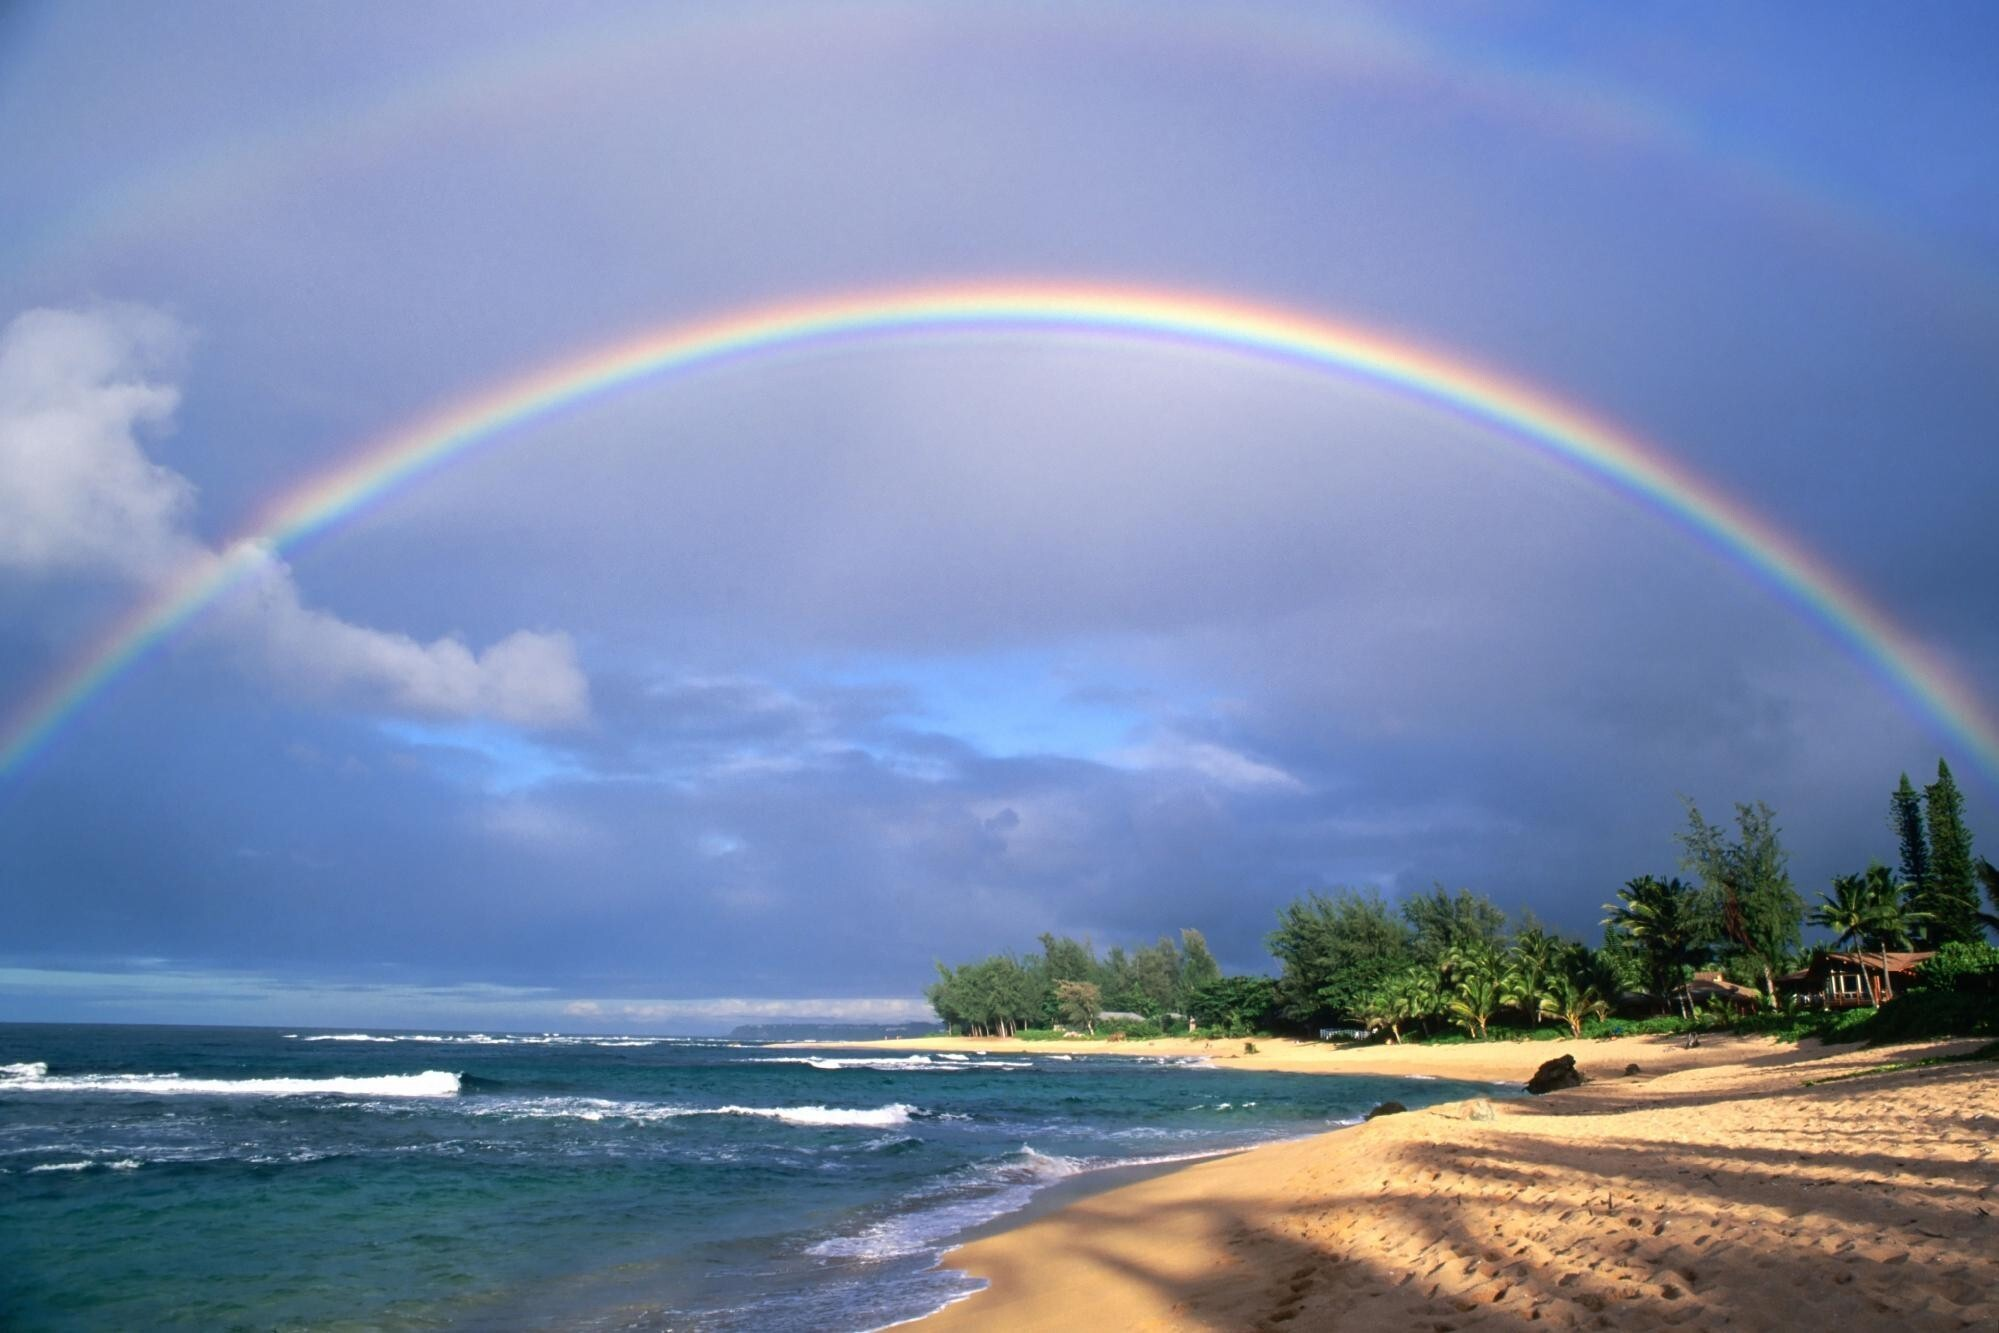 Rainbow on beach wallpaper hd wallpapers rainbow wallpapers voltagebd Choice Image